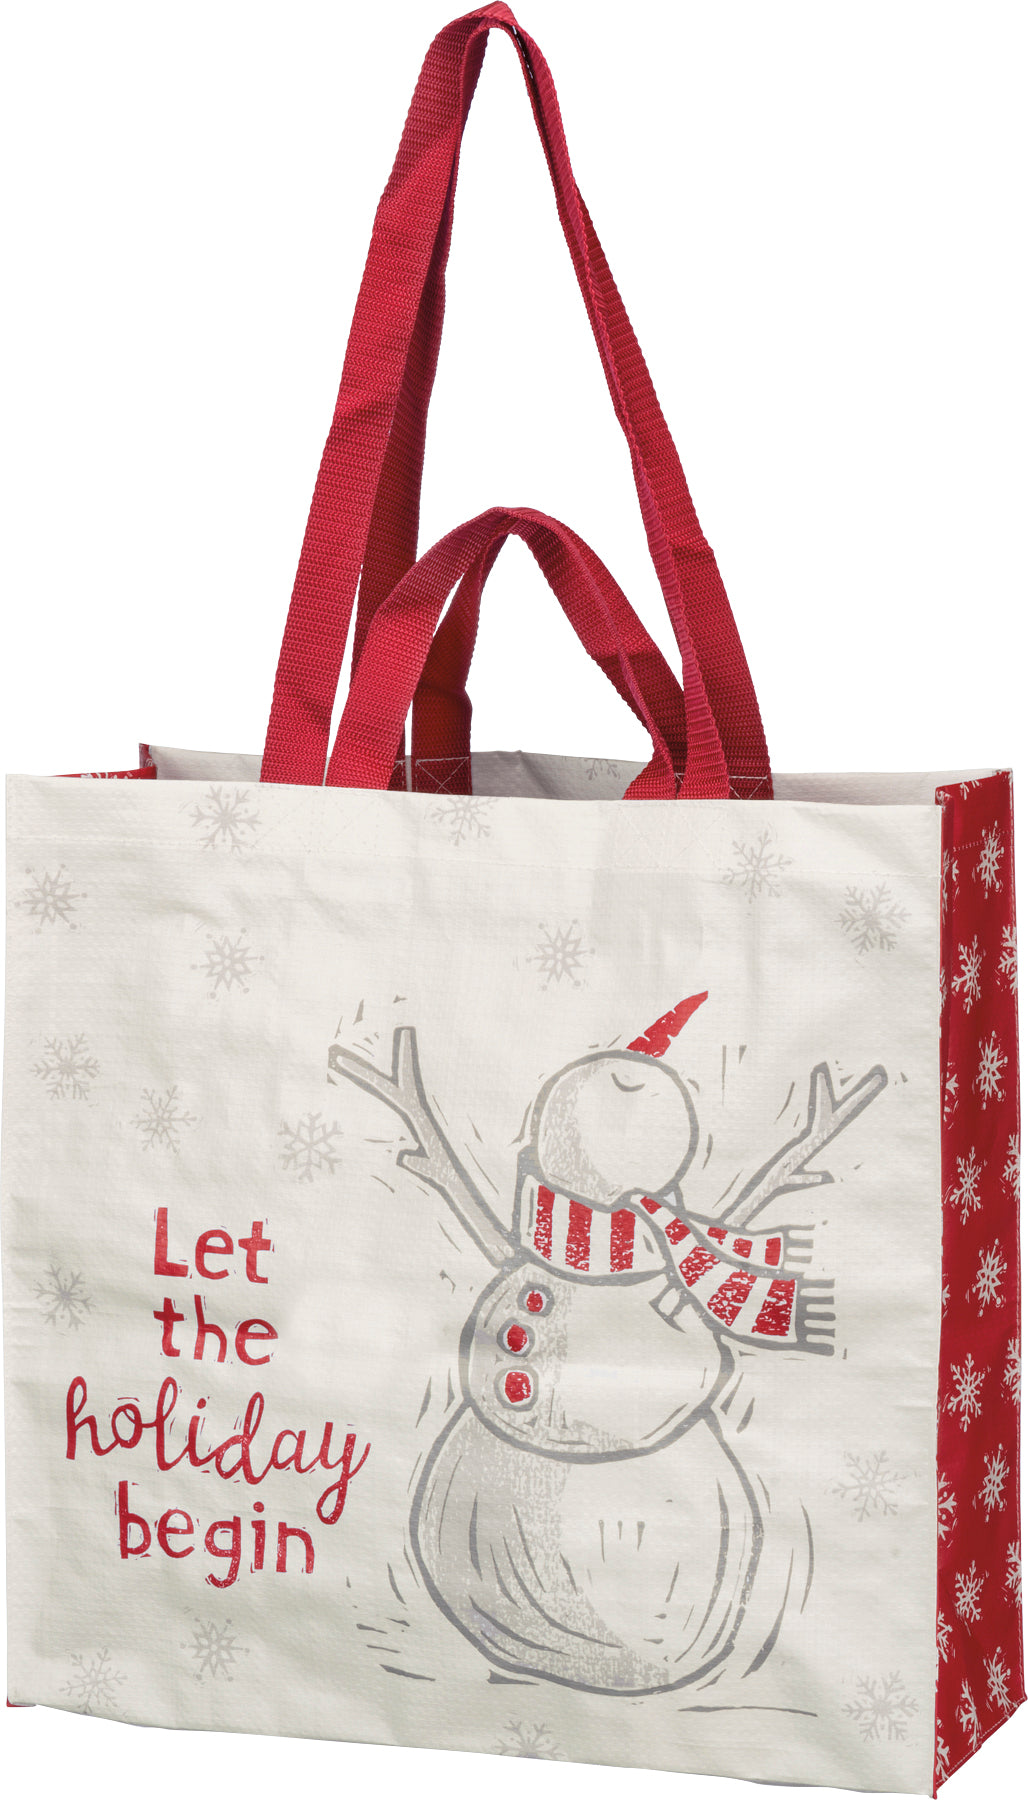 Market Tote - Let The Holiday Begin